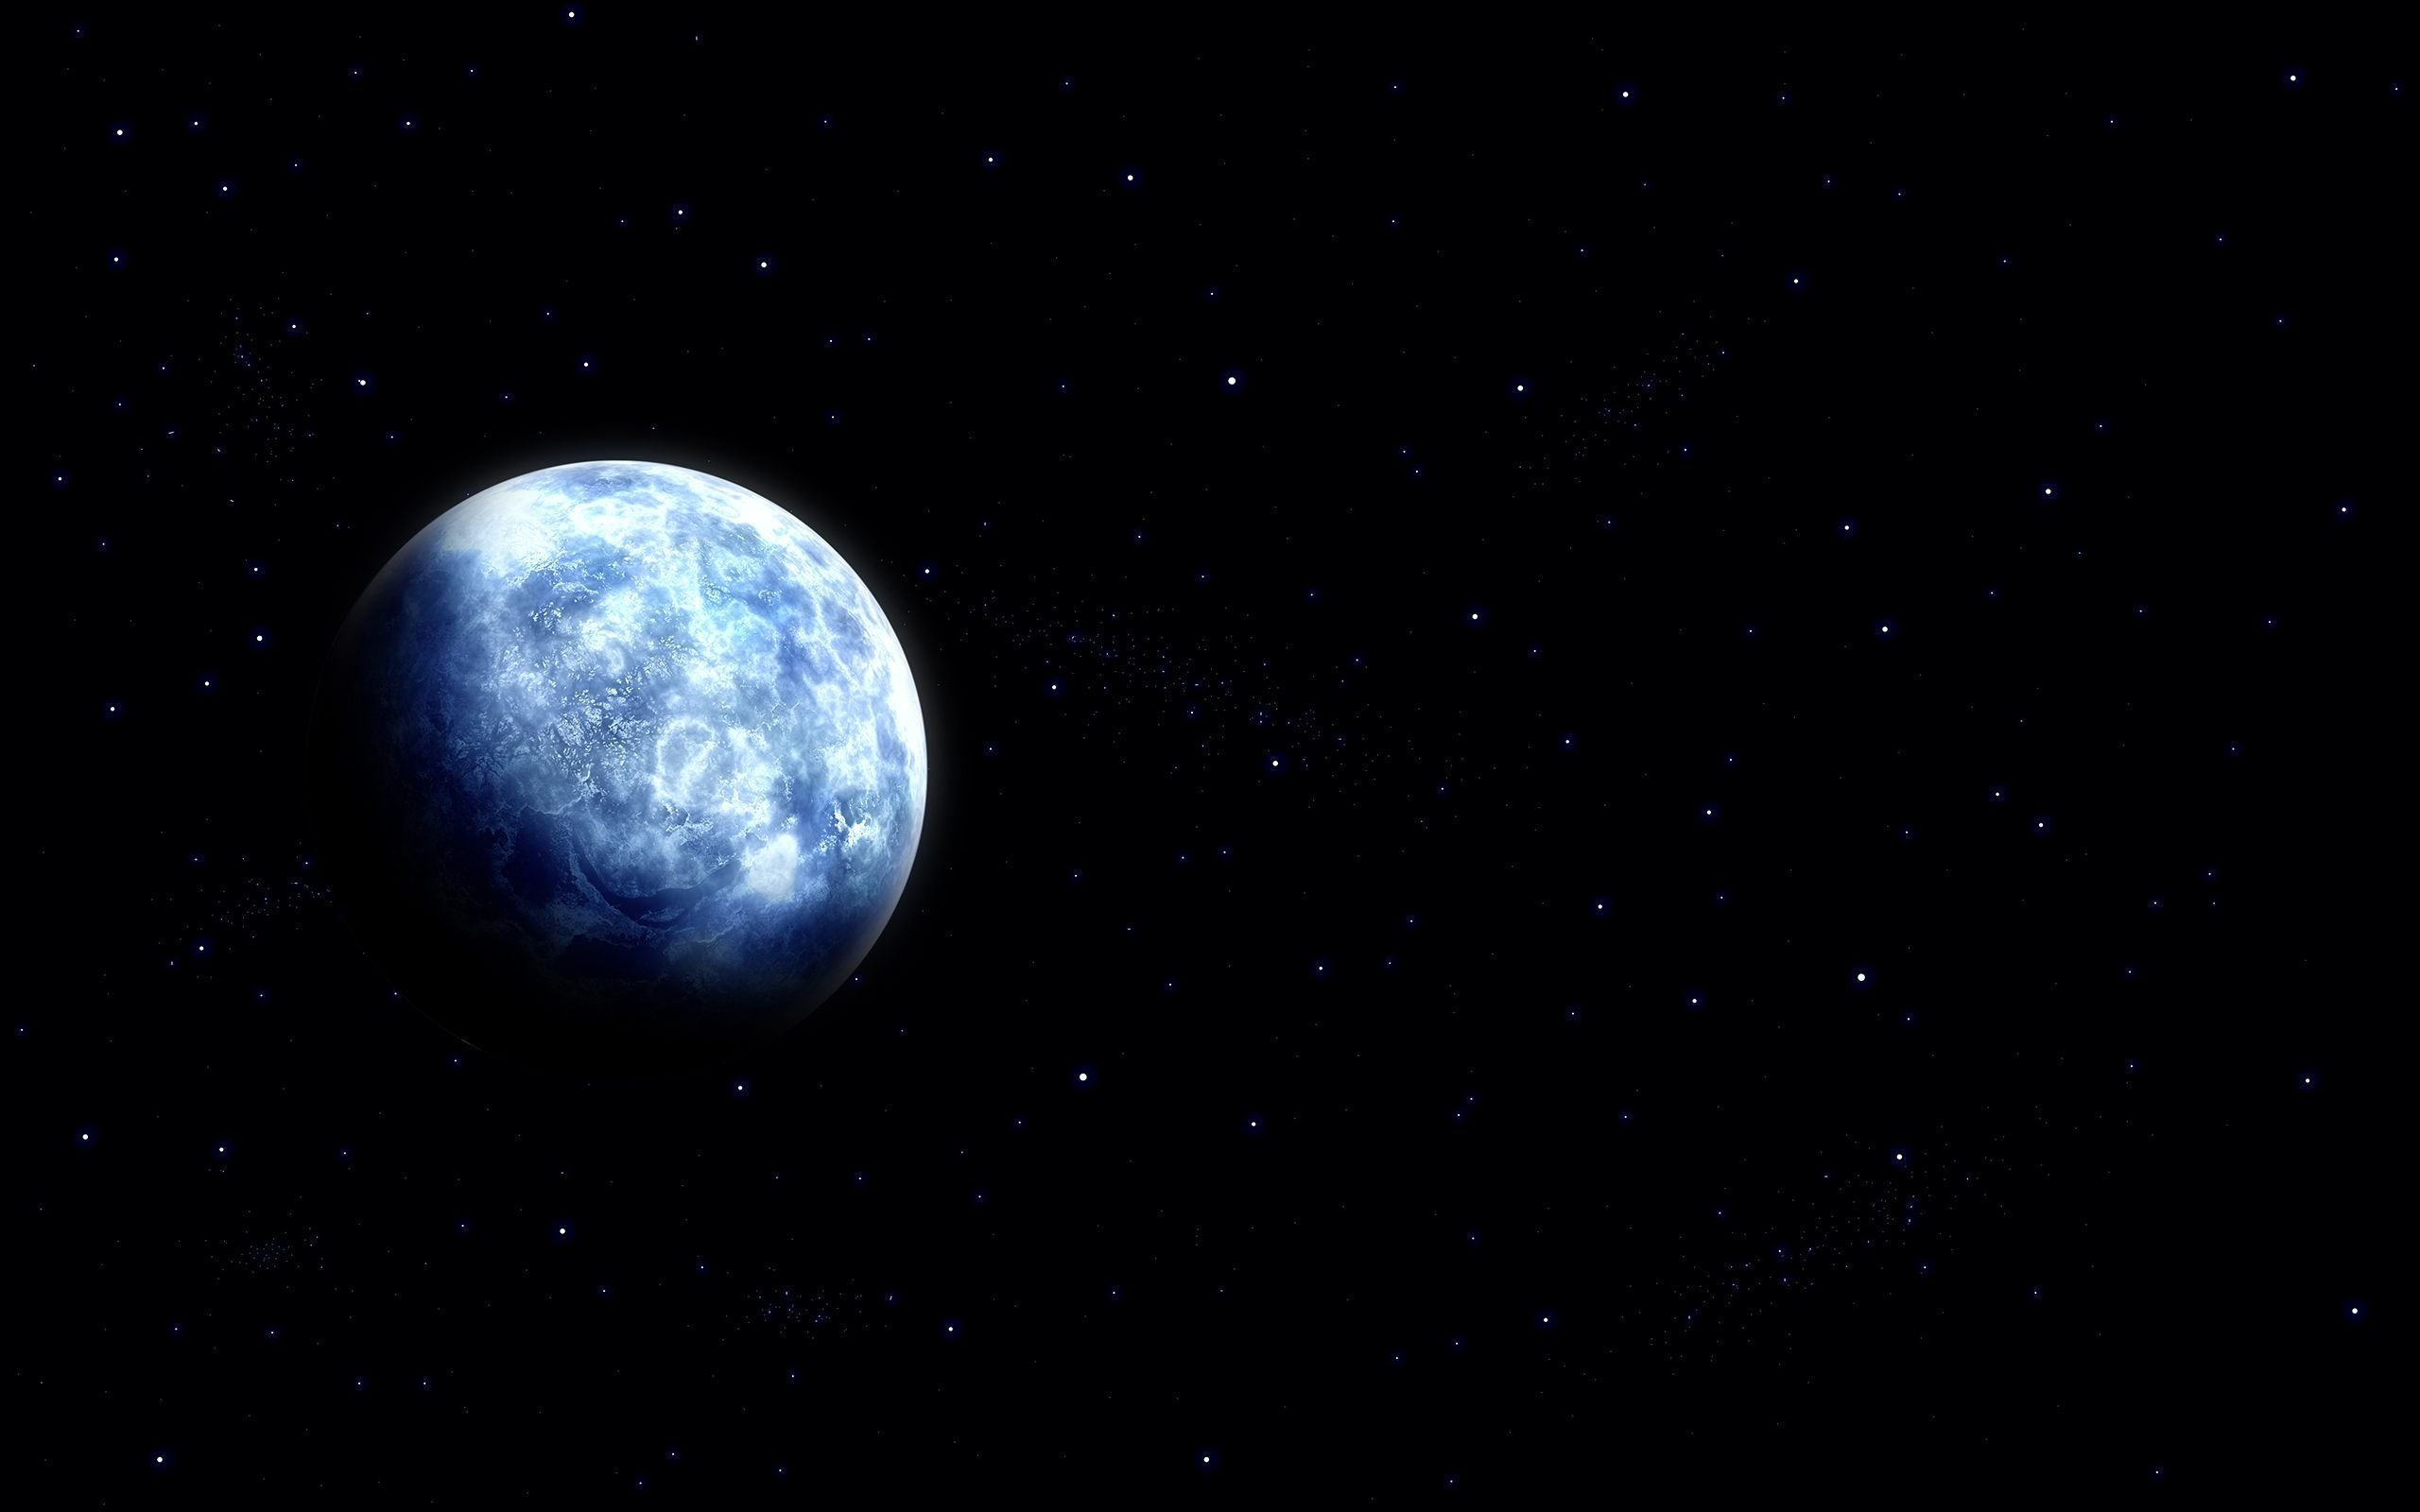 Samsung Galaxy 3d Wallpapers Free Download 30 Gorgeous Hd Wallpapers Of Planet Earth